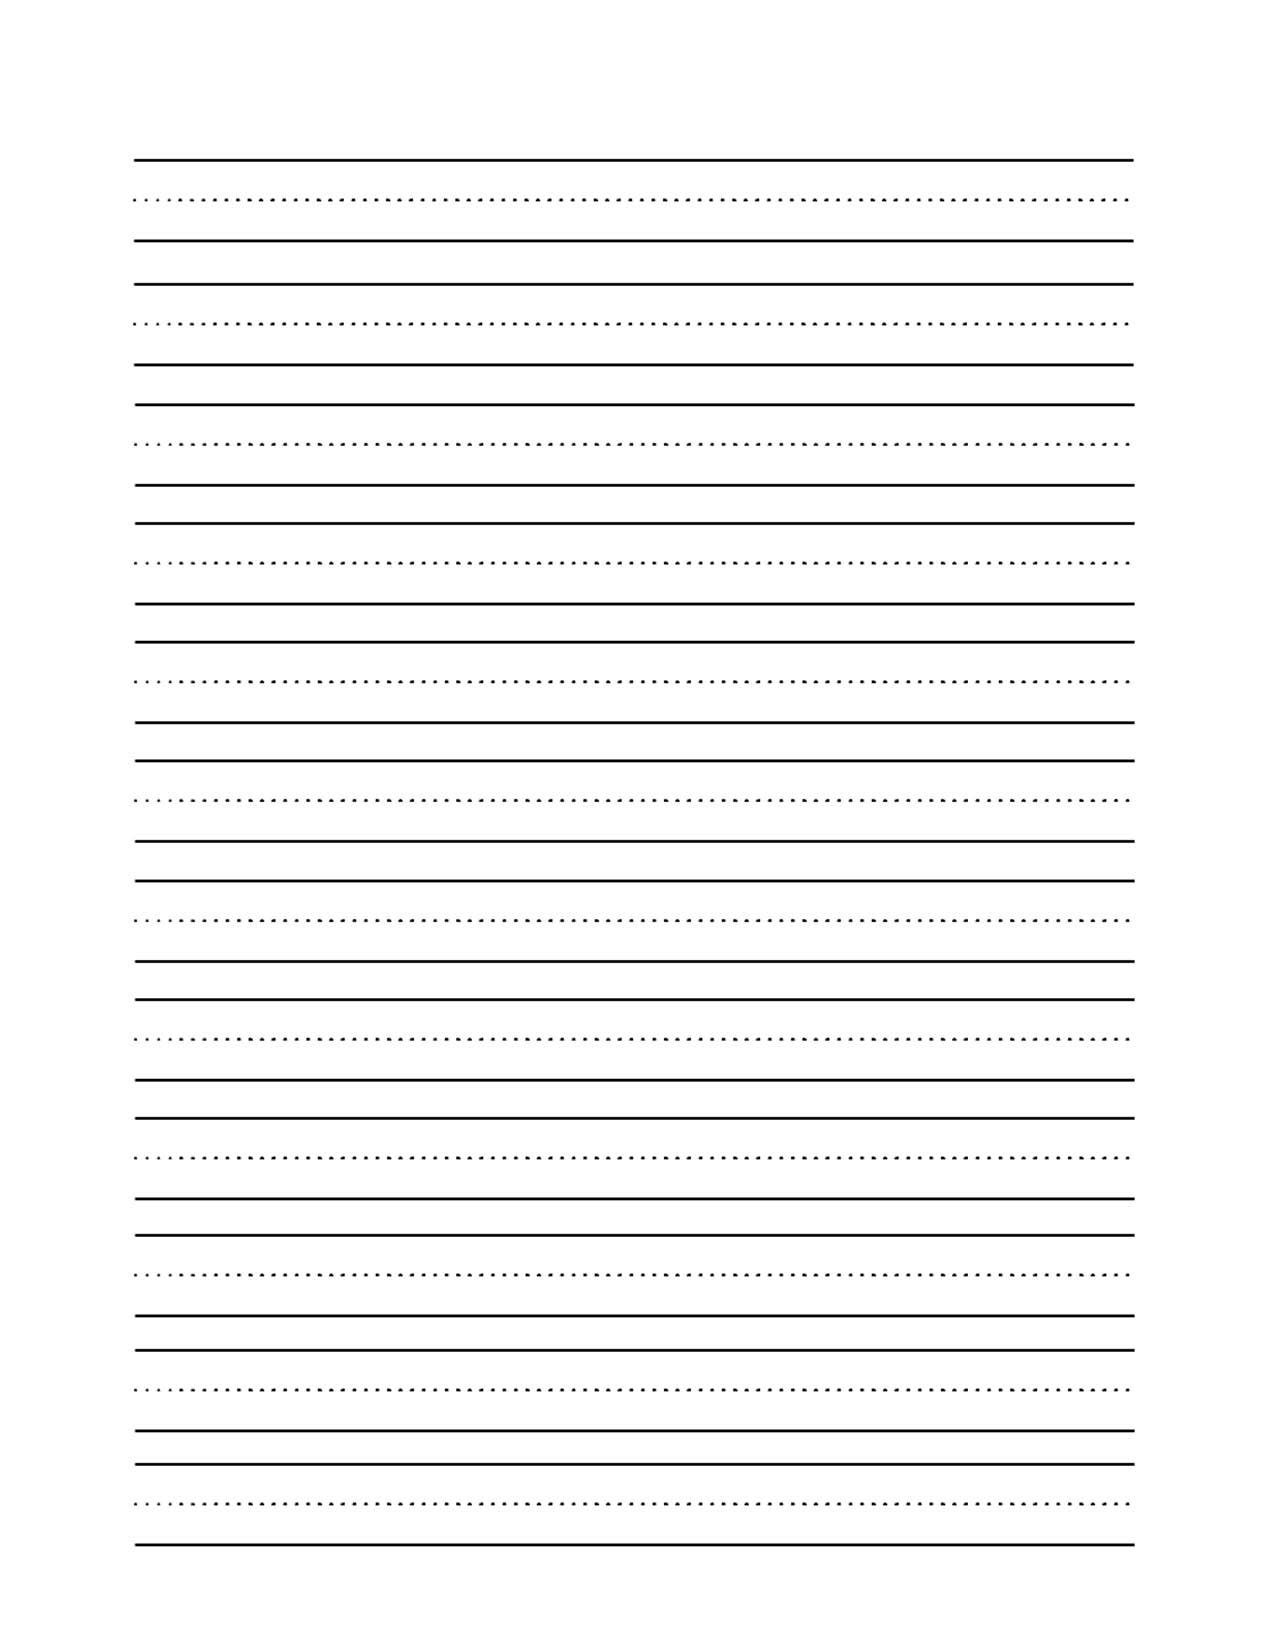 Worksheet Cursive Practice Paper 17 best images about class on pinterest handwriting worksheets practice paper and paper